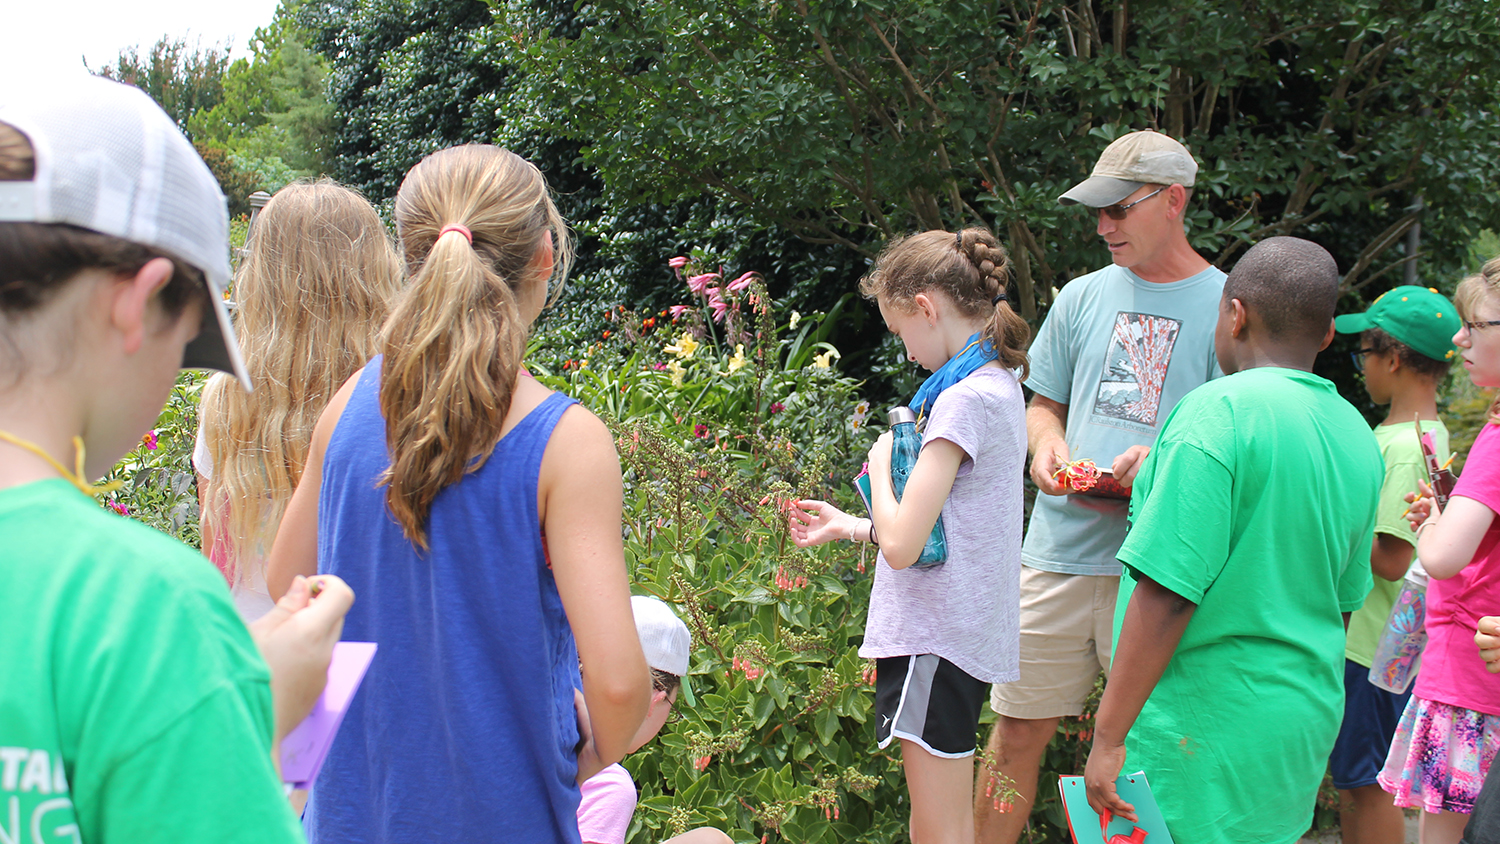 Middle school students examine pollinating plants.